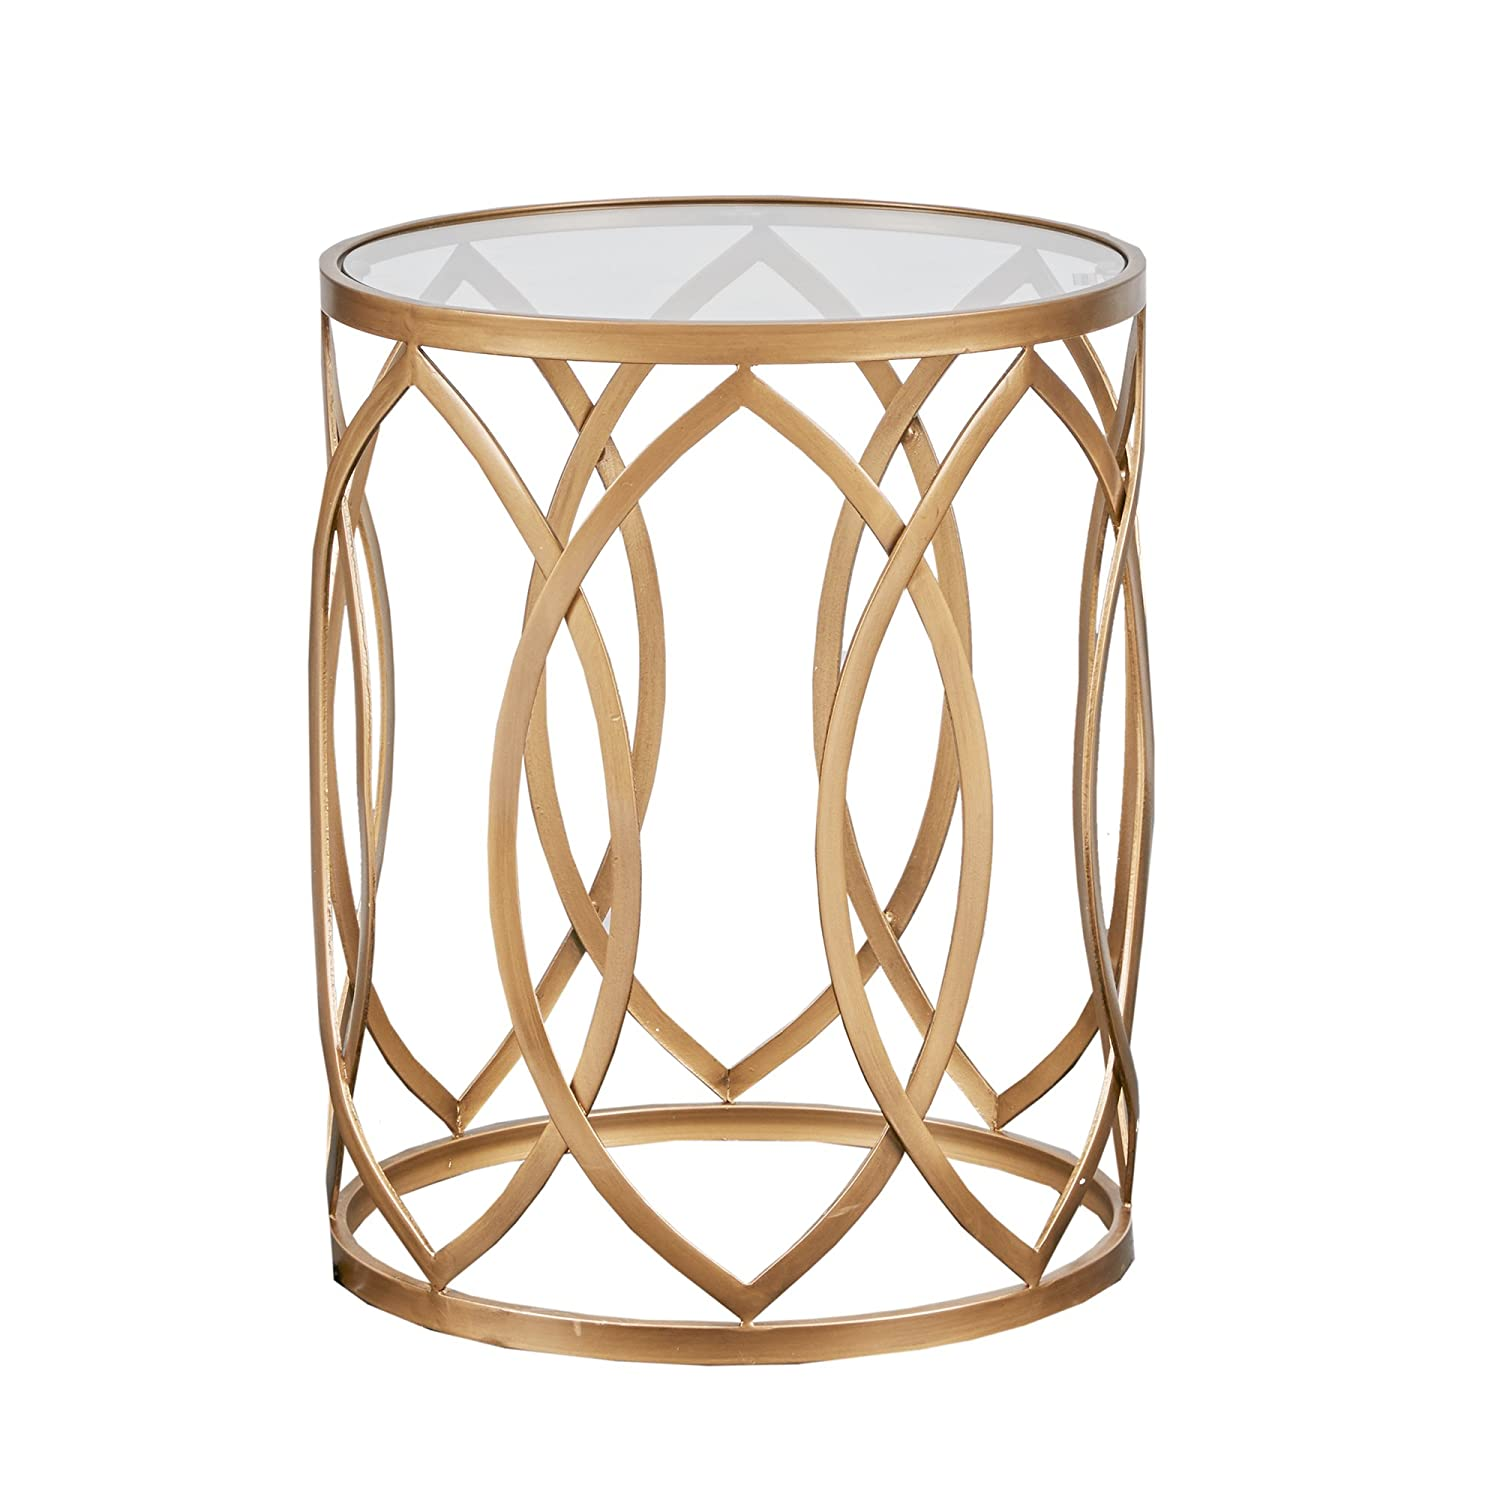 3636c4e2d7053 Amazon.com: Silver Orchid Grant Gold/Glass Metal Eyelet Accent Table:  Kitchen & Dining